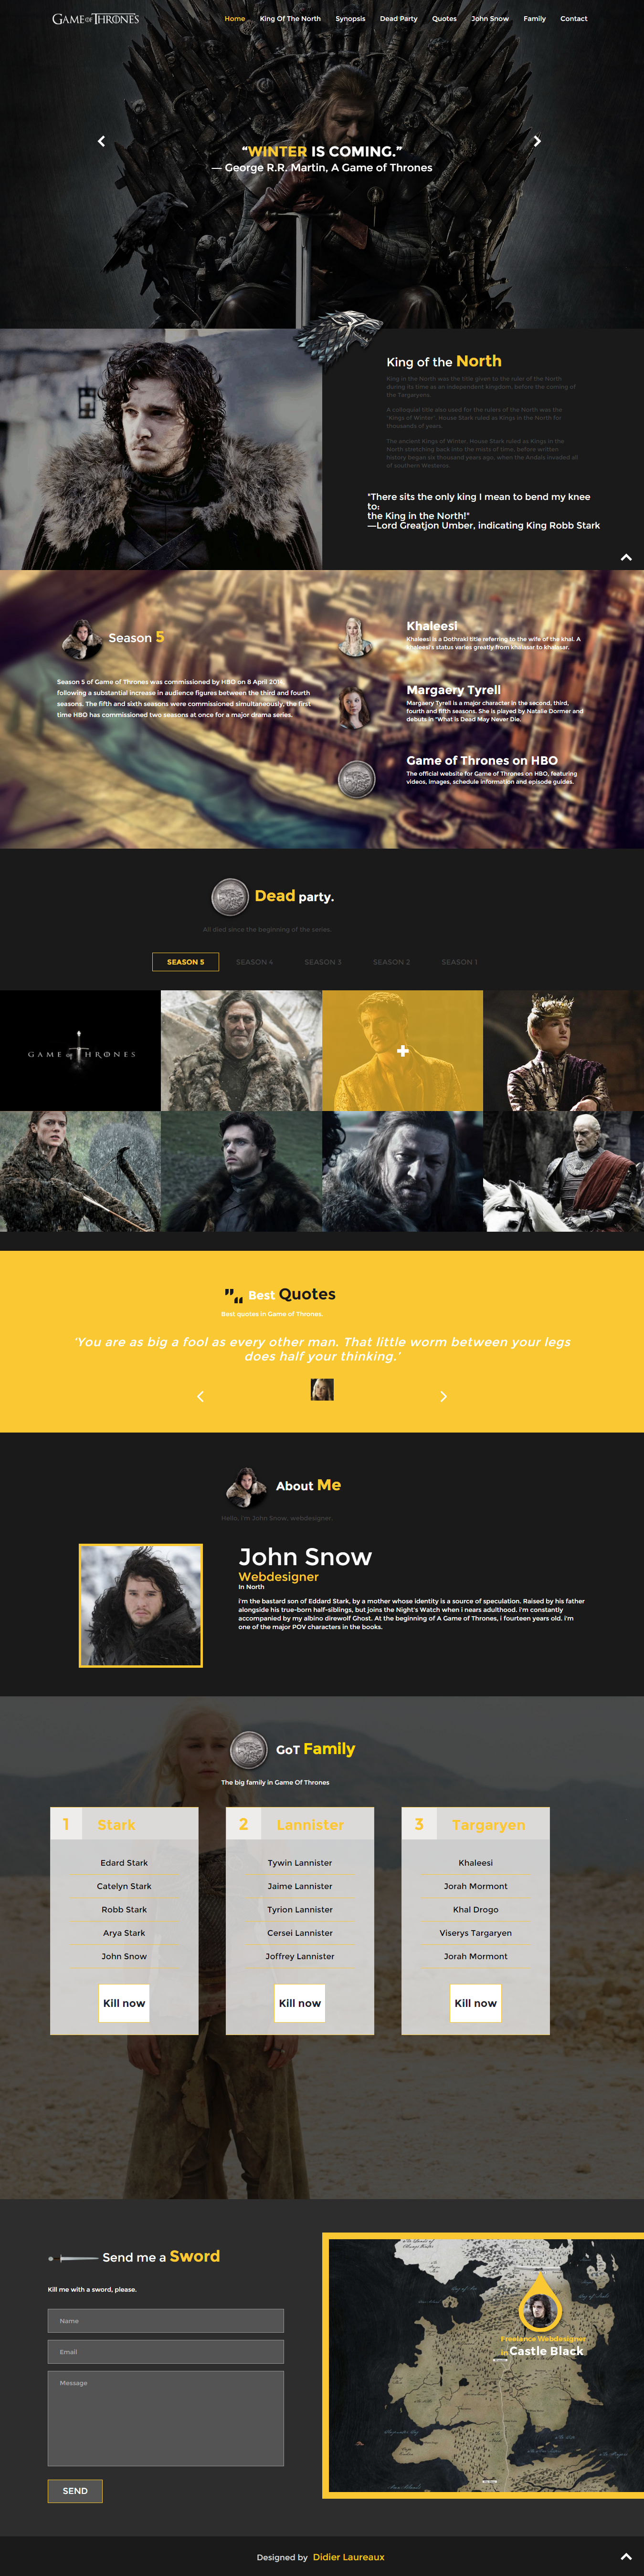 Game of thrones free html css responsive template | Web Design ...